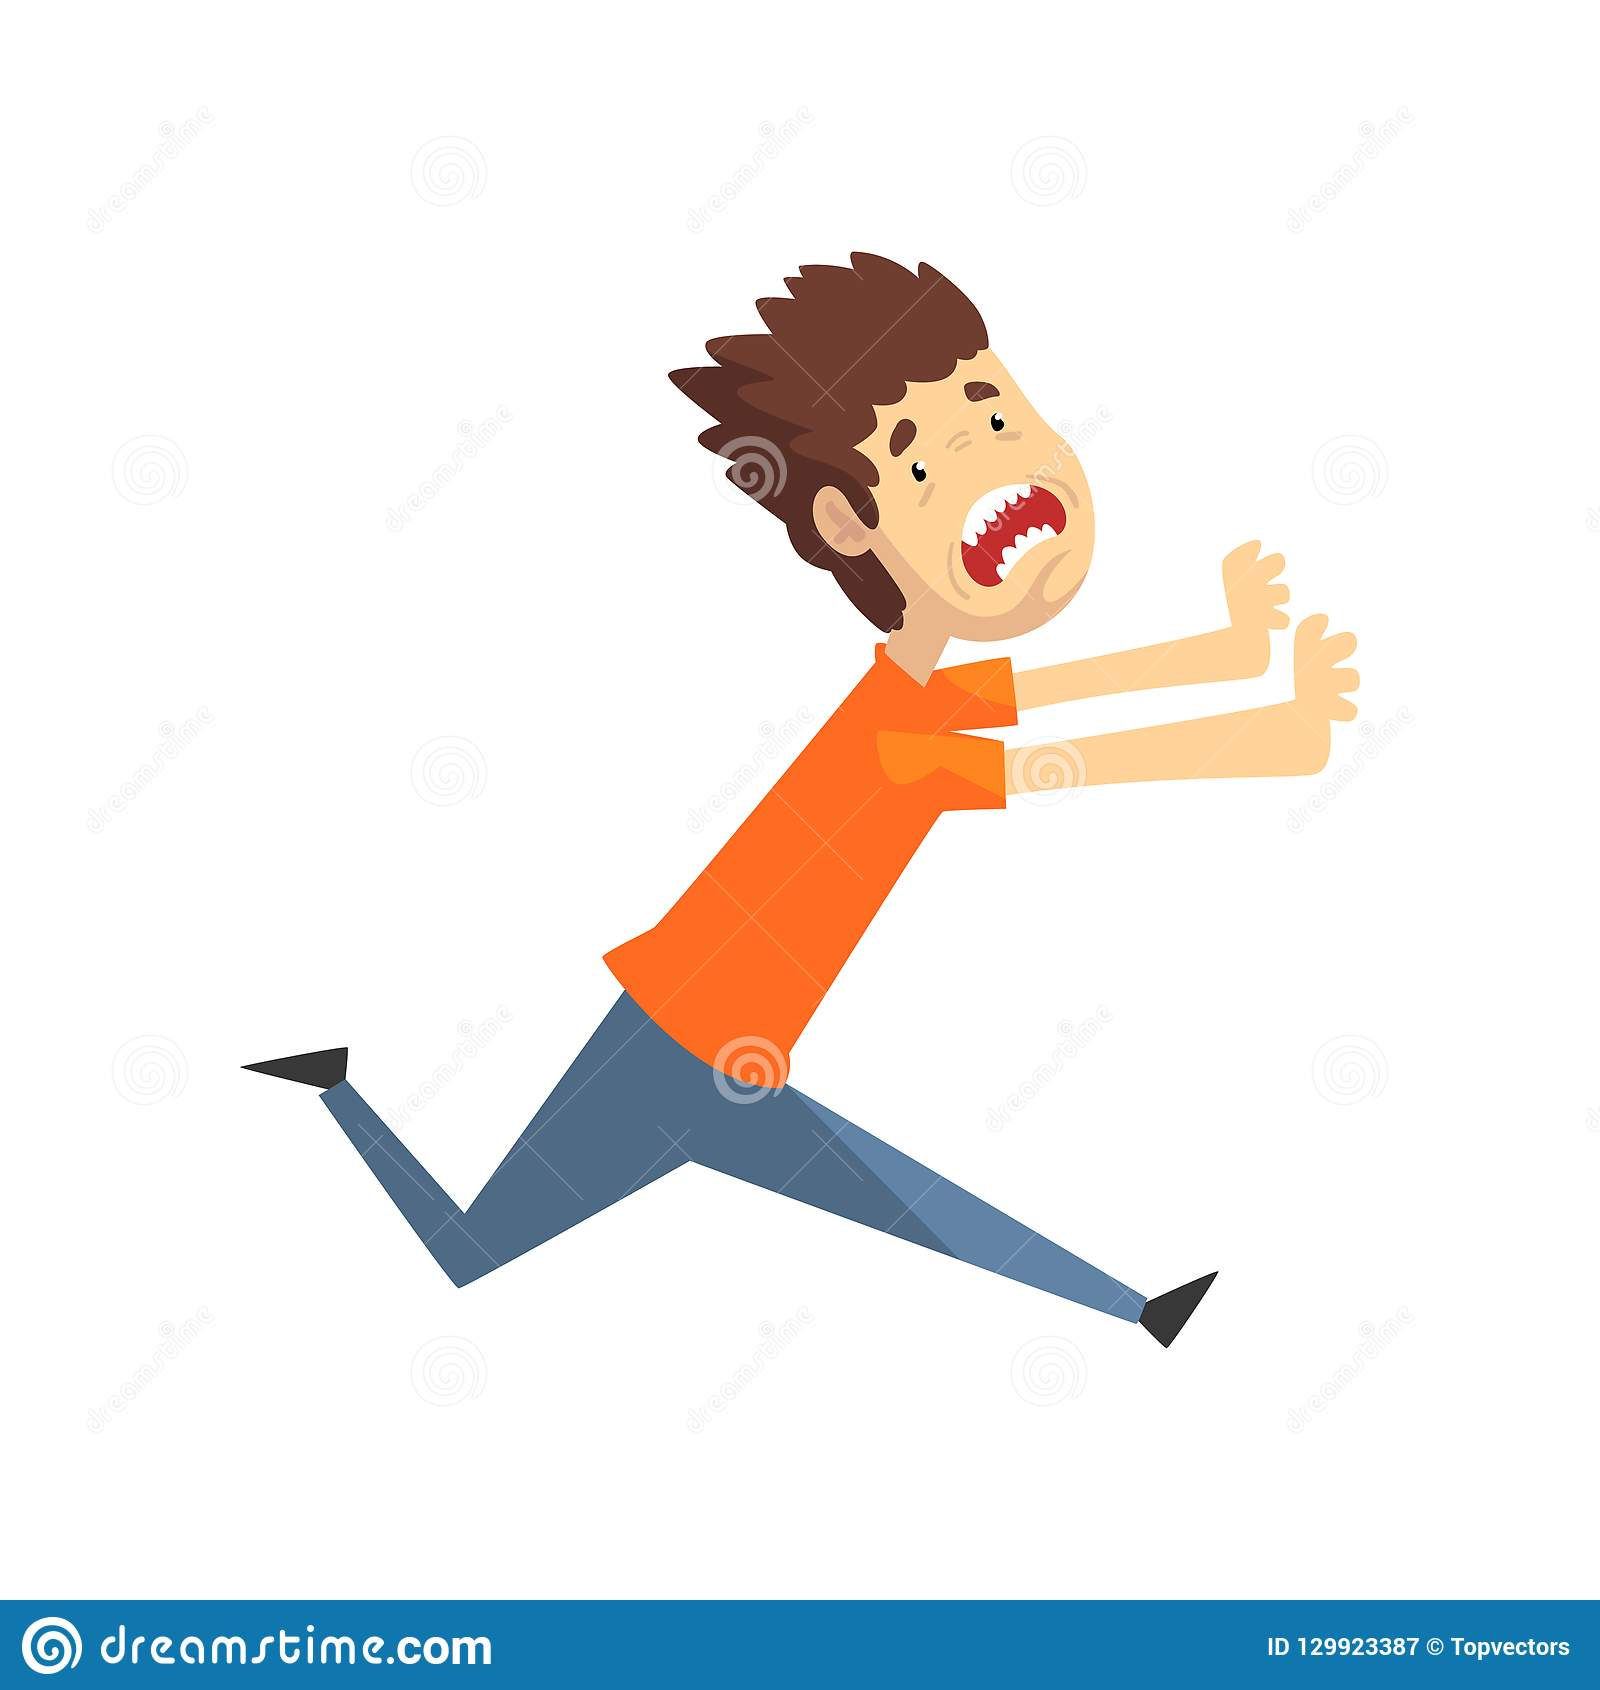 Scared and panicked young man running and shouting, emotional guy afraid of something vector Illustration on a white